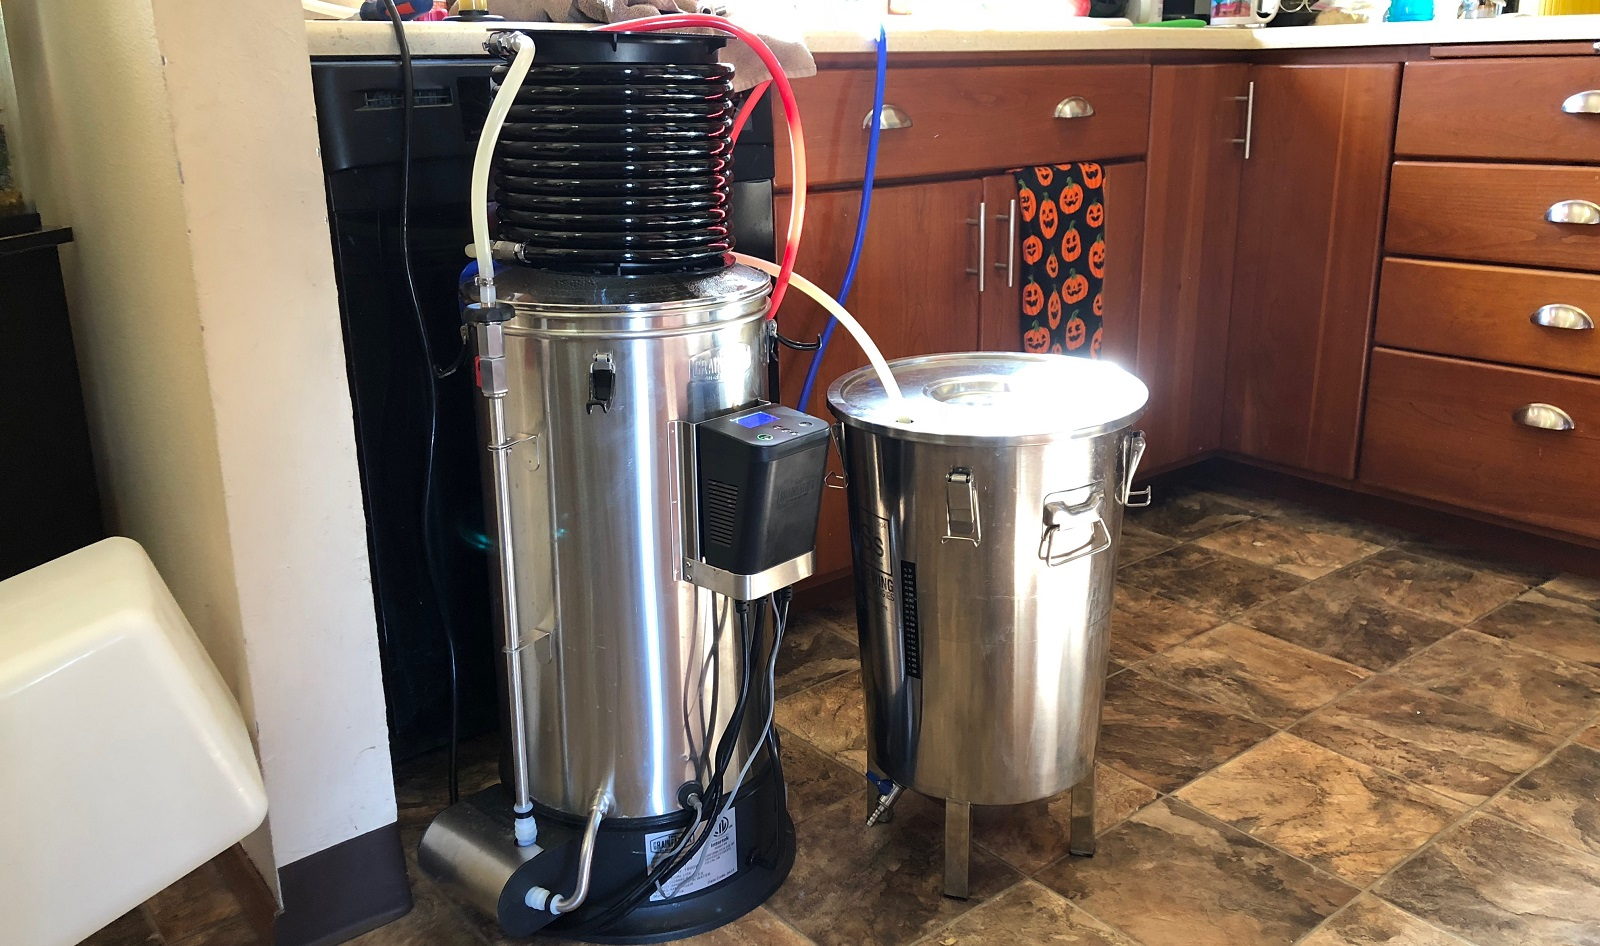 How To Connect Wort Chiller To Kitchen Sink